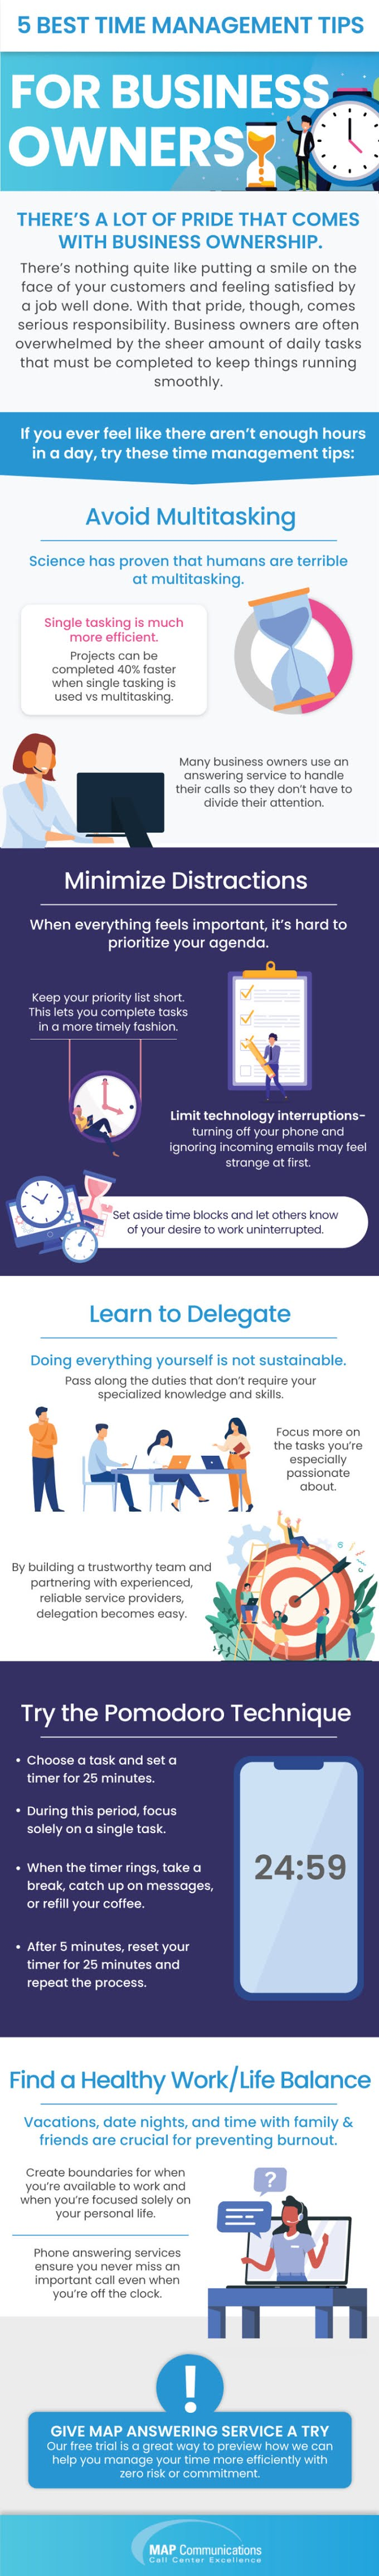 5 Best Time Management Tips for Business Owners #infographic #Business #infographics #Management Tips #Business Owners